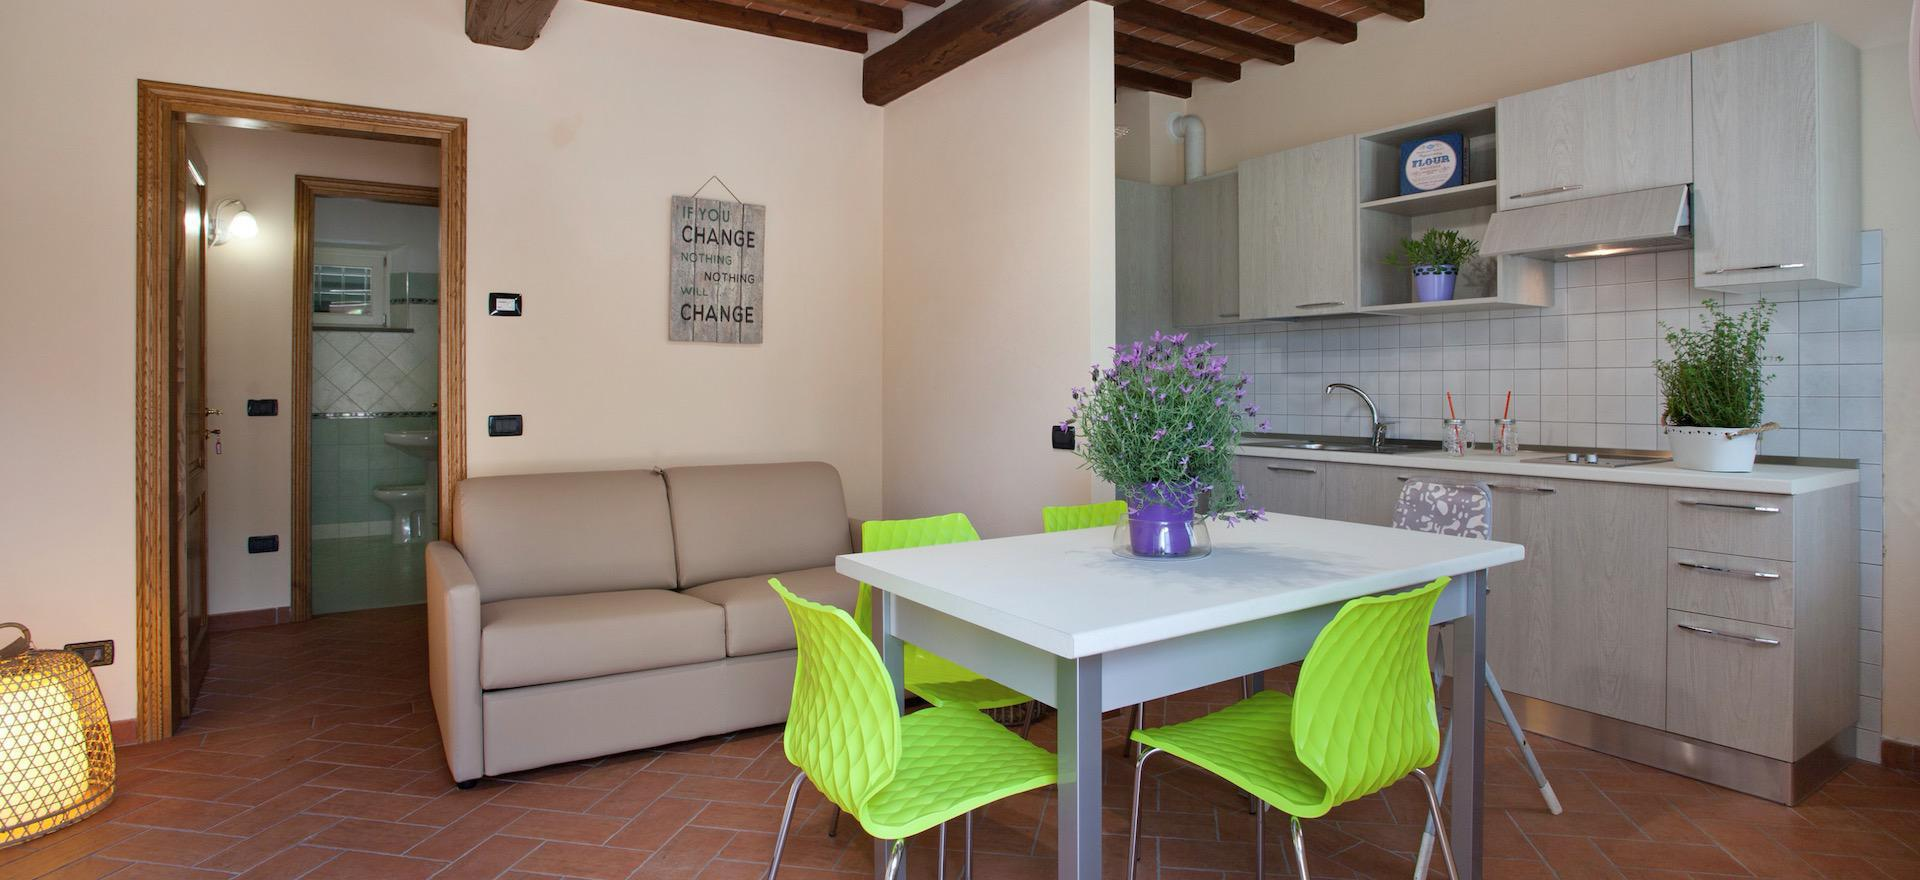 Agriturismo Tuscany Child friendly and cozy agriturismo near Lucca